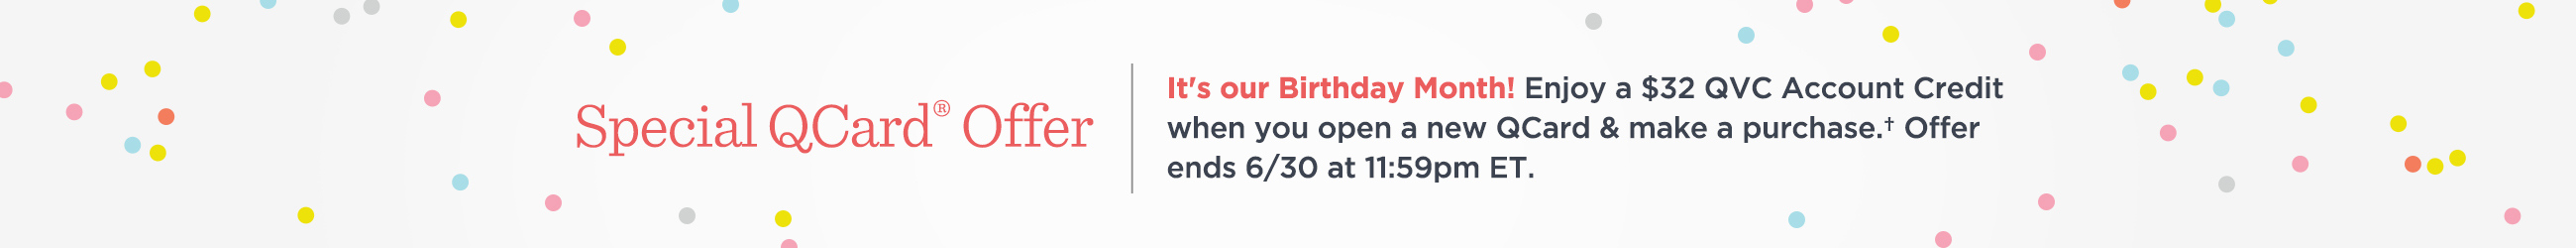 Special QCard® Offer  It's our Birthday Month! Enjoy a $32 QVC Account Credit when you open a new QCard & make a purchase.† Offer ends 6/30 at 11:59pm ET.